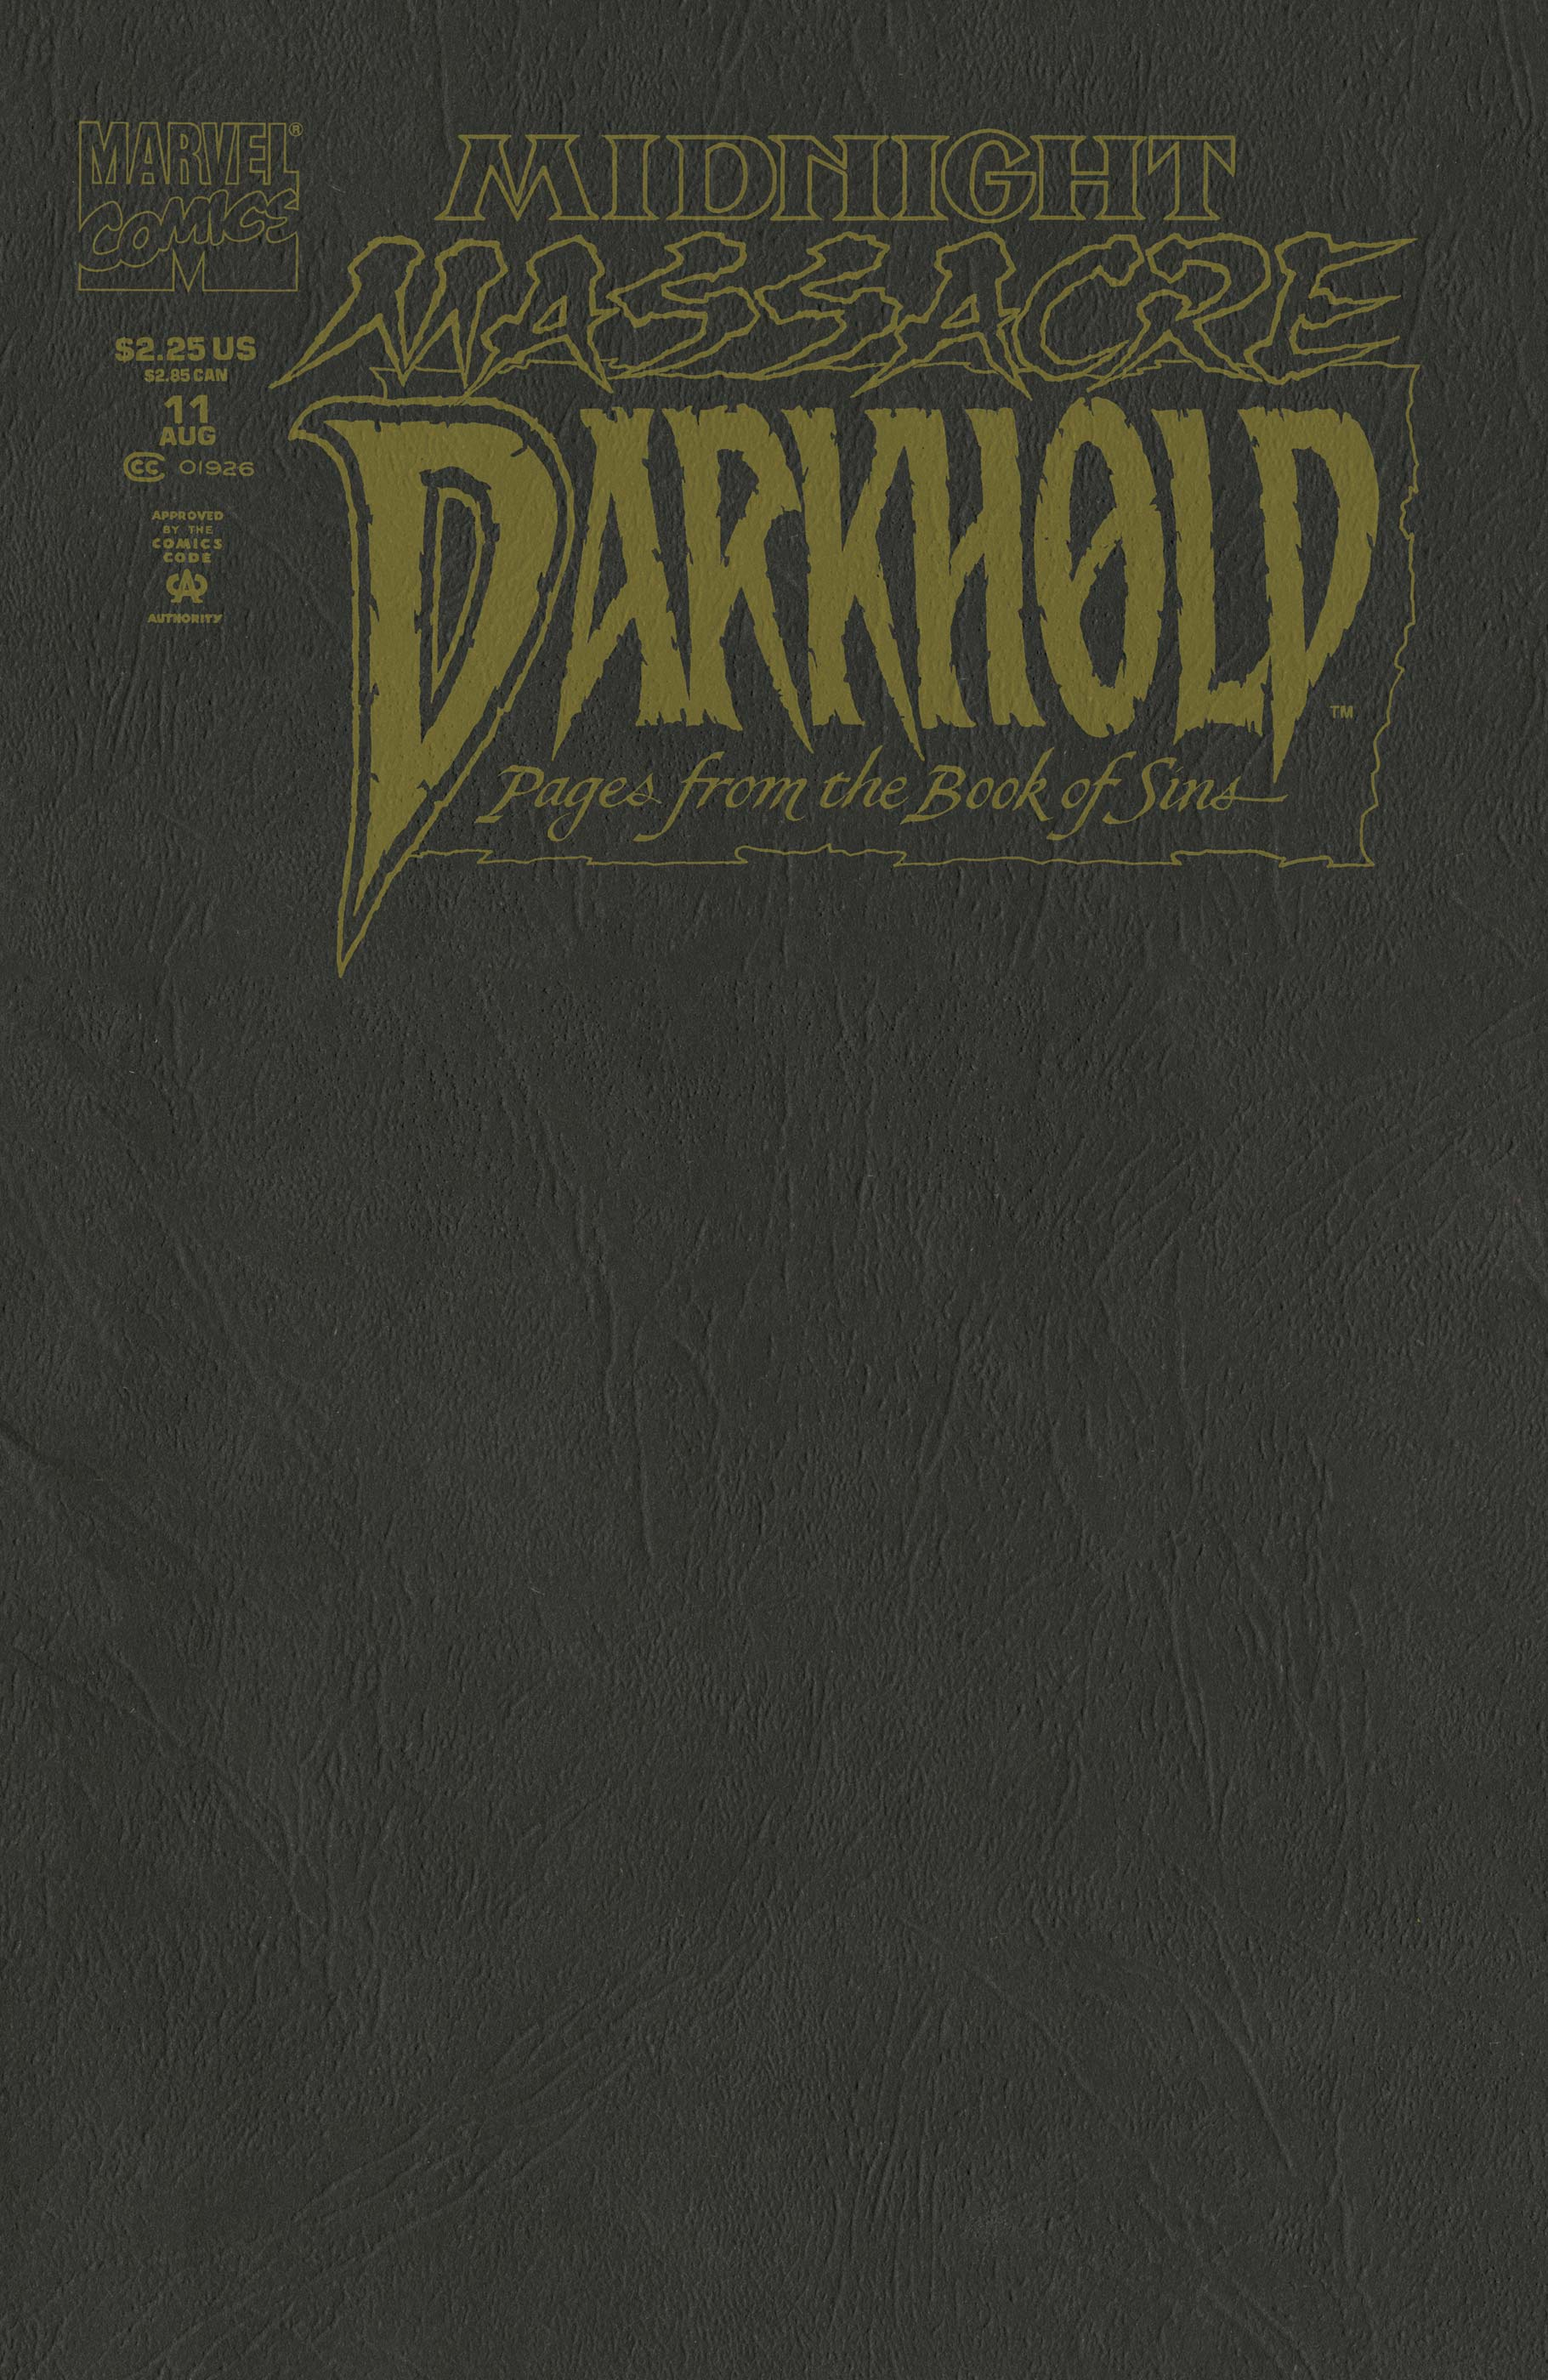 Darkhold: Pages from the Book of Sins (1992) #11